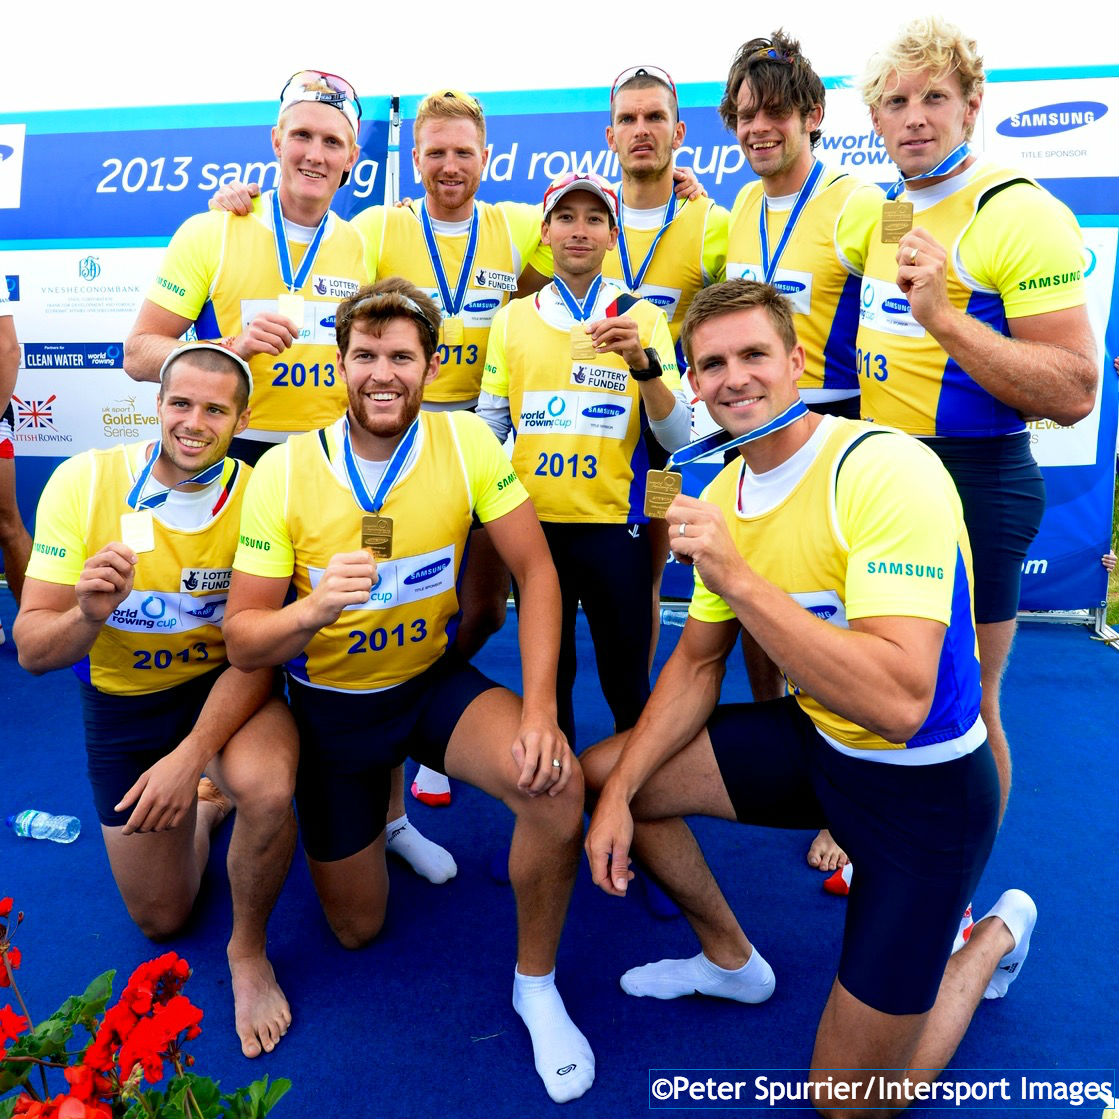 (Clockwise from back left) Oliver Cook, Will Satch, Phelan Hill, Moe Sbihi, Tom Ransley, Andrew Triggs-Hodge, Pete Reed, Daniel Ritchie and James Foad won men's eight gold at the Eton Dorney World Cup in 2013